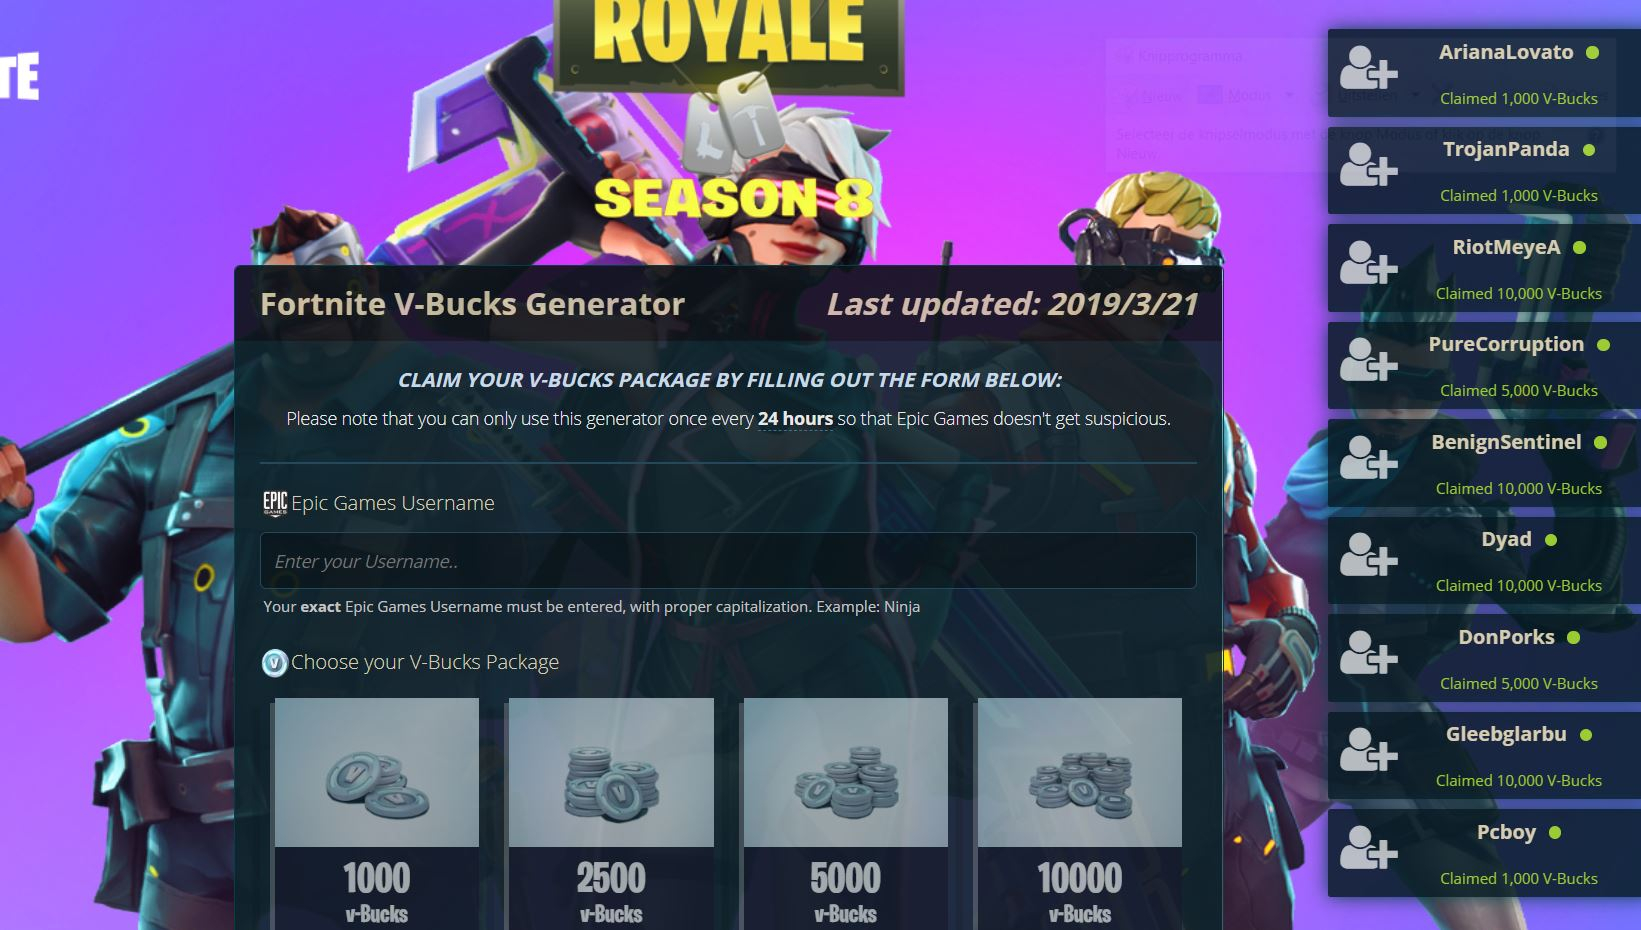 2019] Fortnite V-Bucks Generator